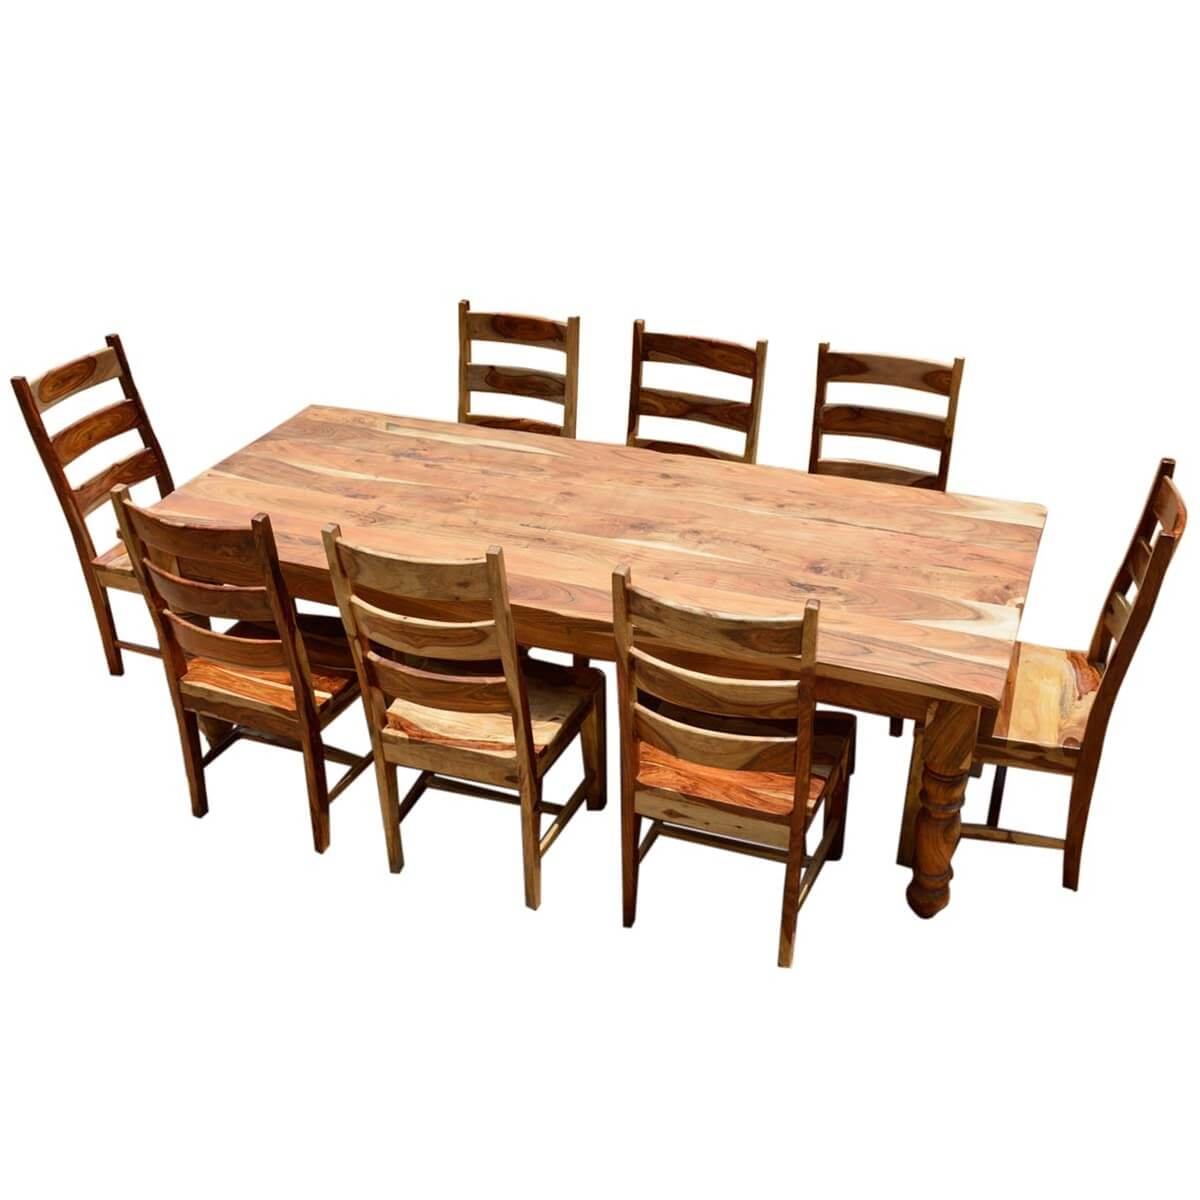 Nottingham Solid Wood Large Rustic Dining Room Table Chair Set: Rustic Solid Wood Farmhouse Dining Room Table Chair Set